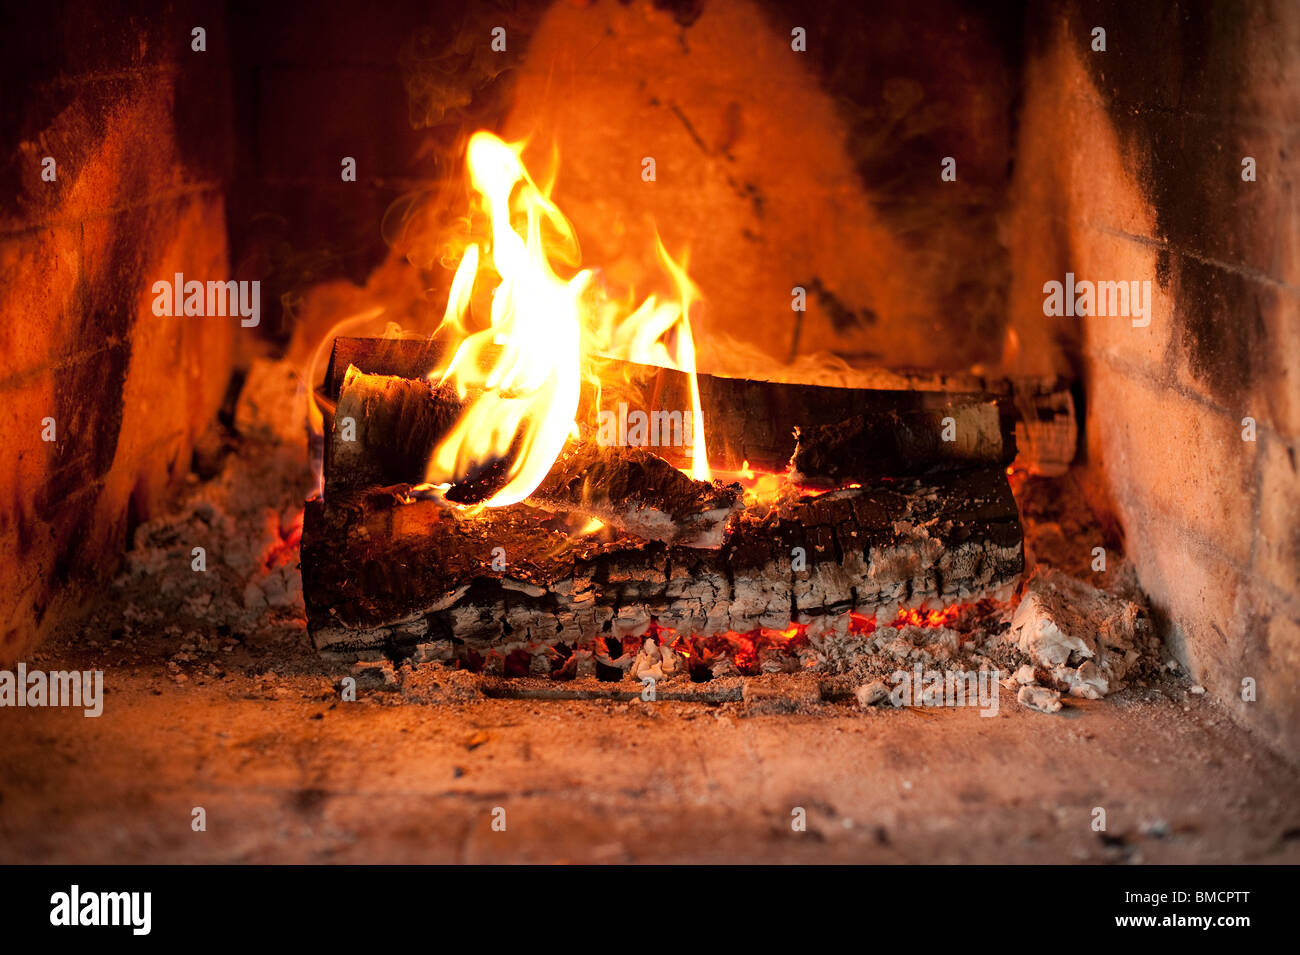 Fireplace with burning logs - Stock Image